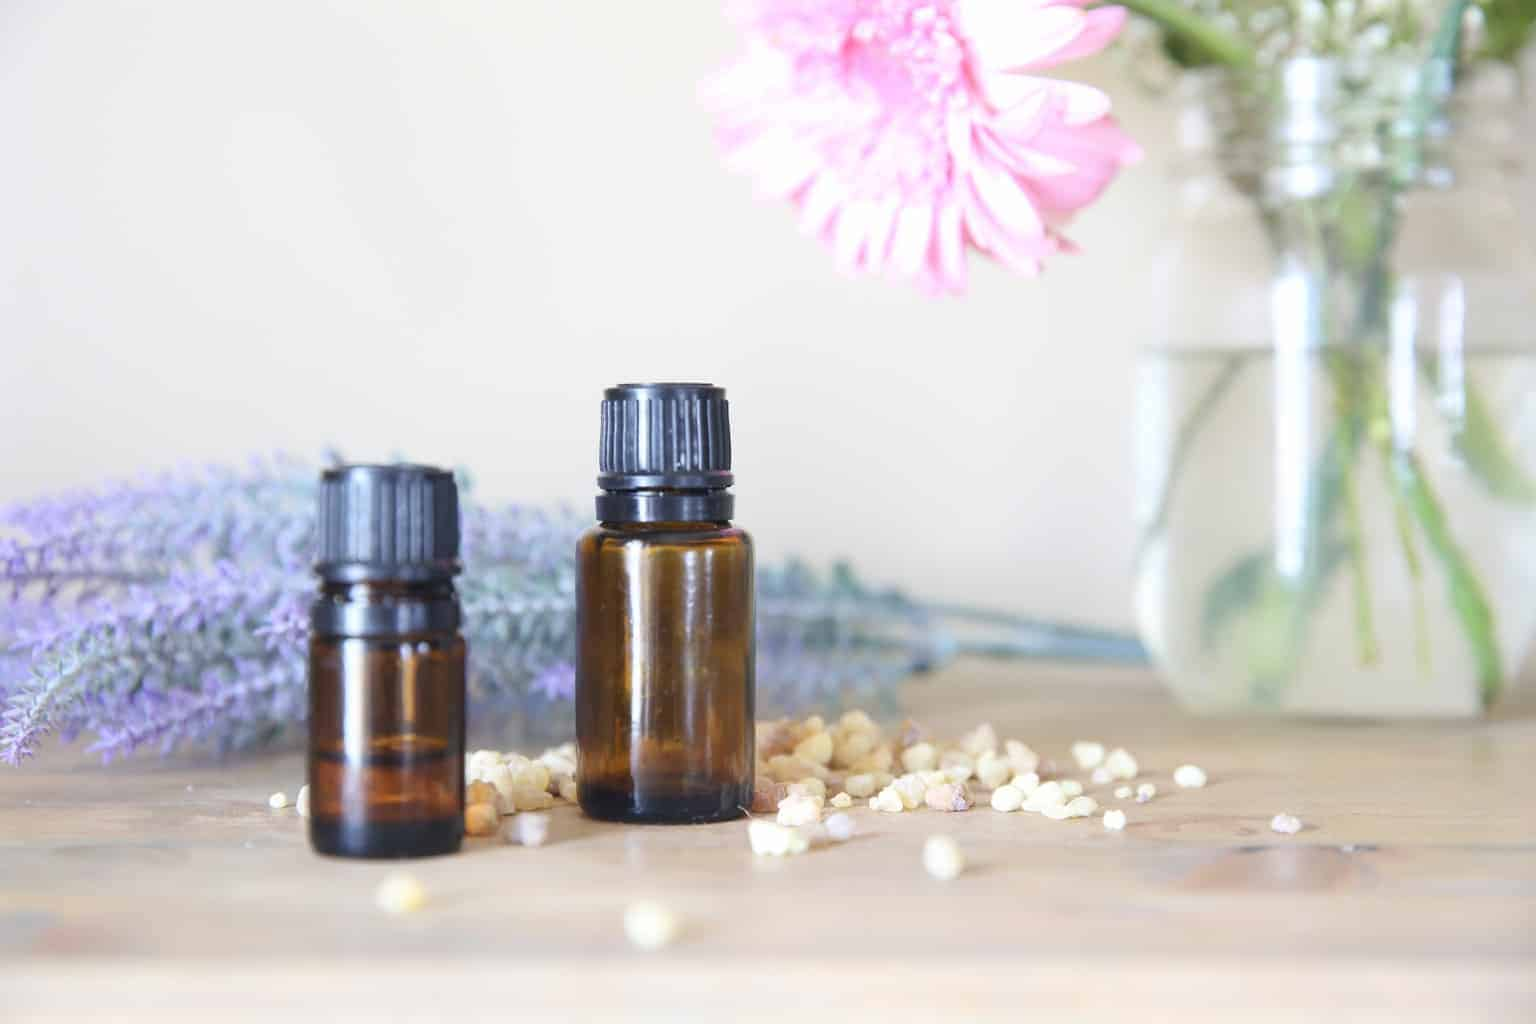 Come along for a typical day in my home to see which essential oils I use for my daily routine.